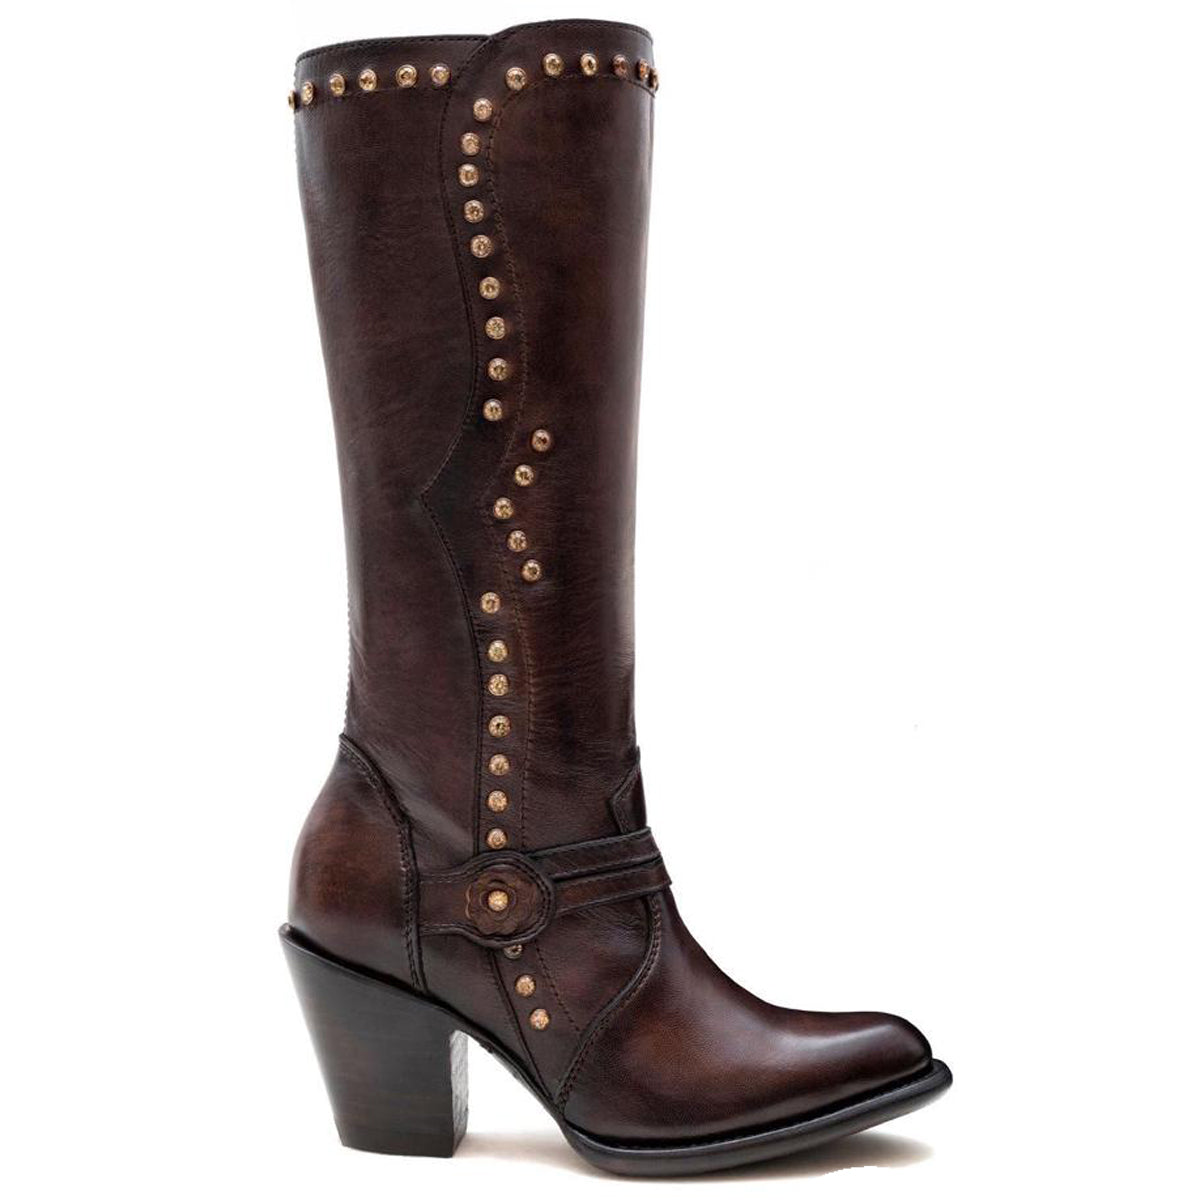 Denali Choco - High Boot